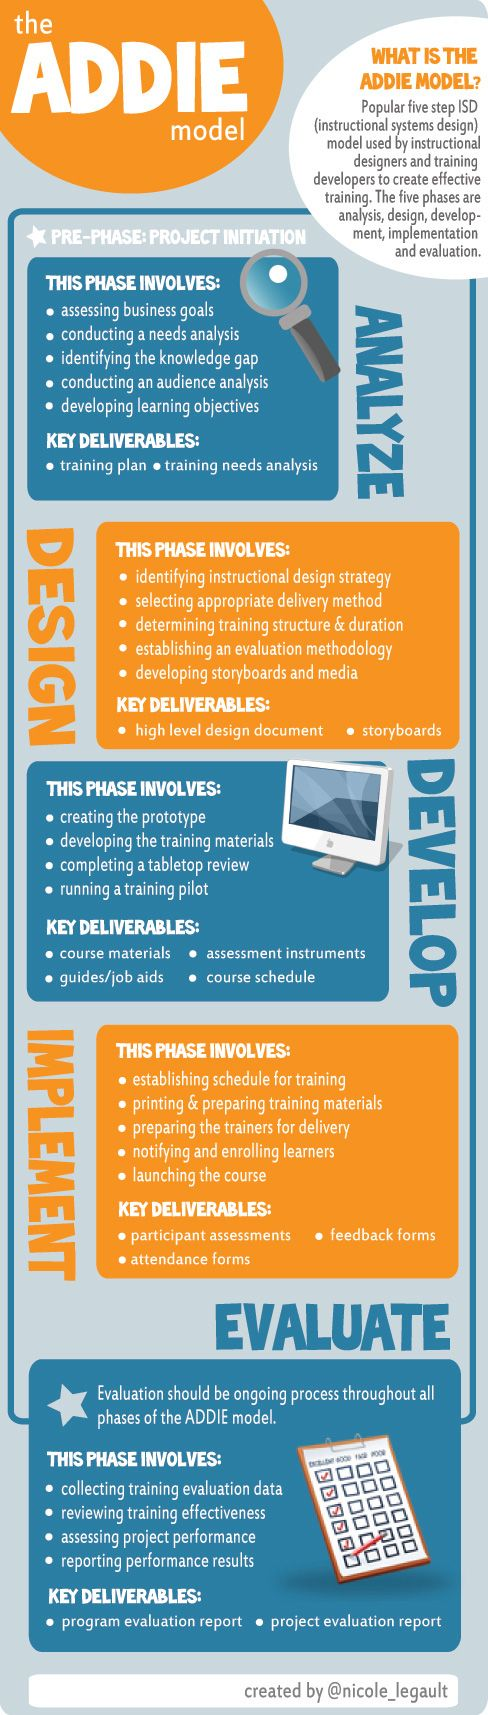 Infographic by Nicole Legault ADDIE(Analysis, Design, Development, Implementation & Evaluation) isthe methodologyused by the majority ofinstructional designers for training development. There may be some debate as to whether certain tasks belong in the design or development phase. Also, certaintasks may have been omitted due to space constraints.